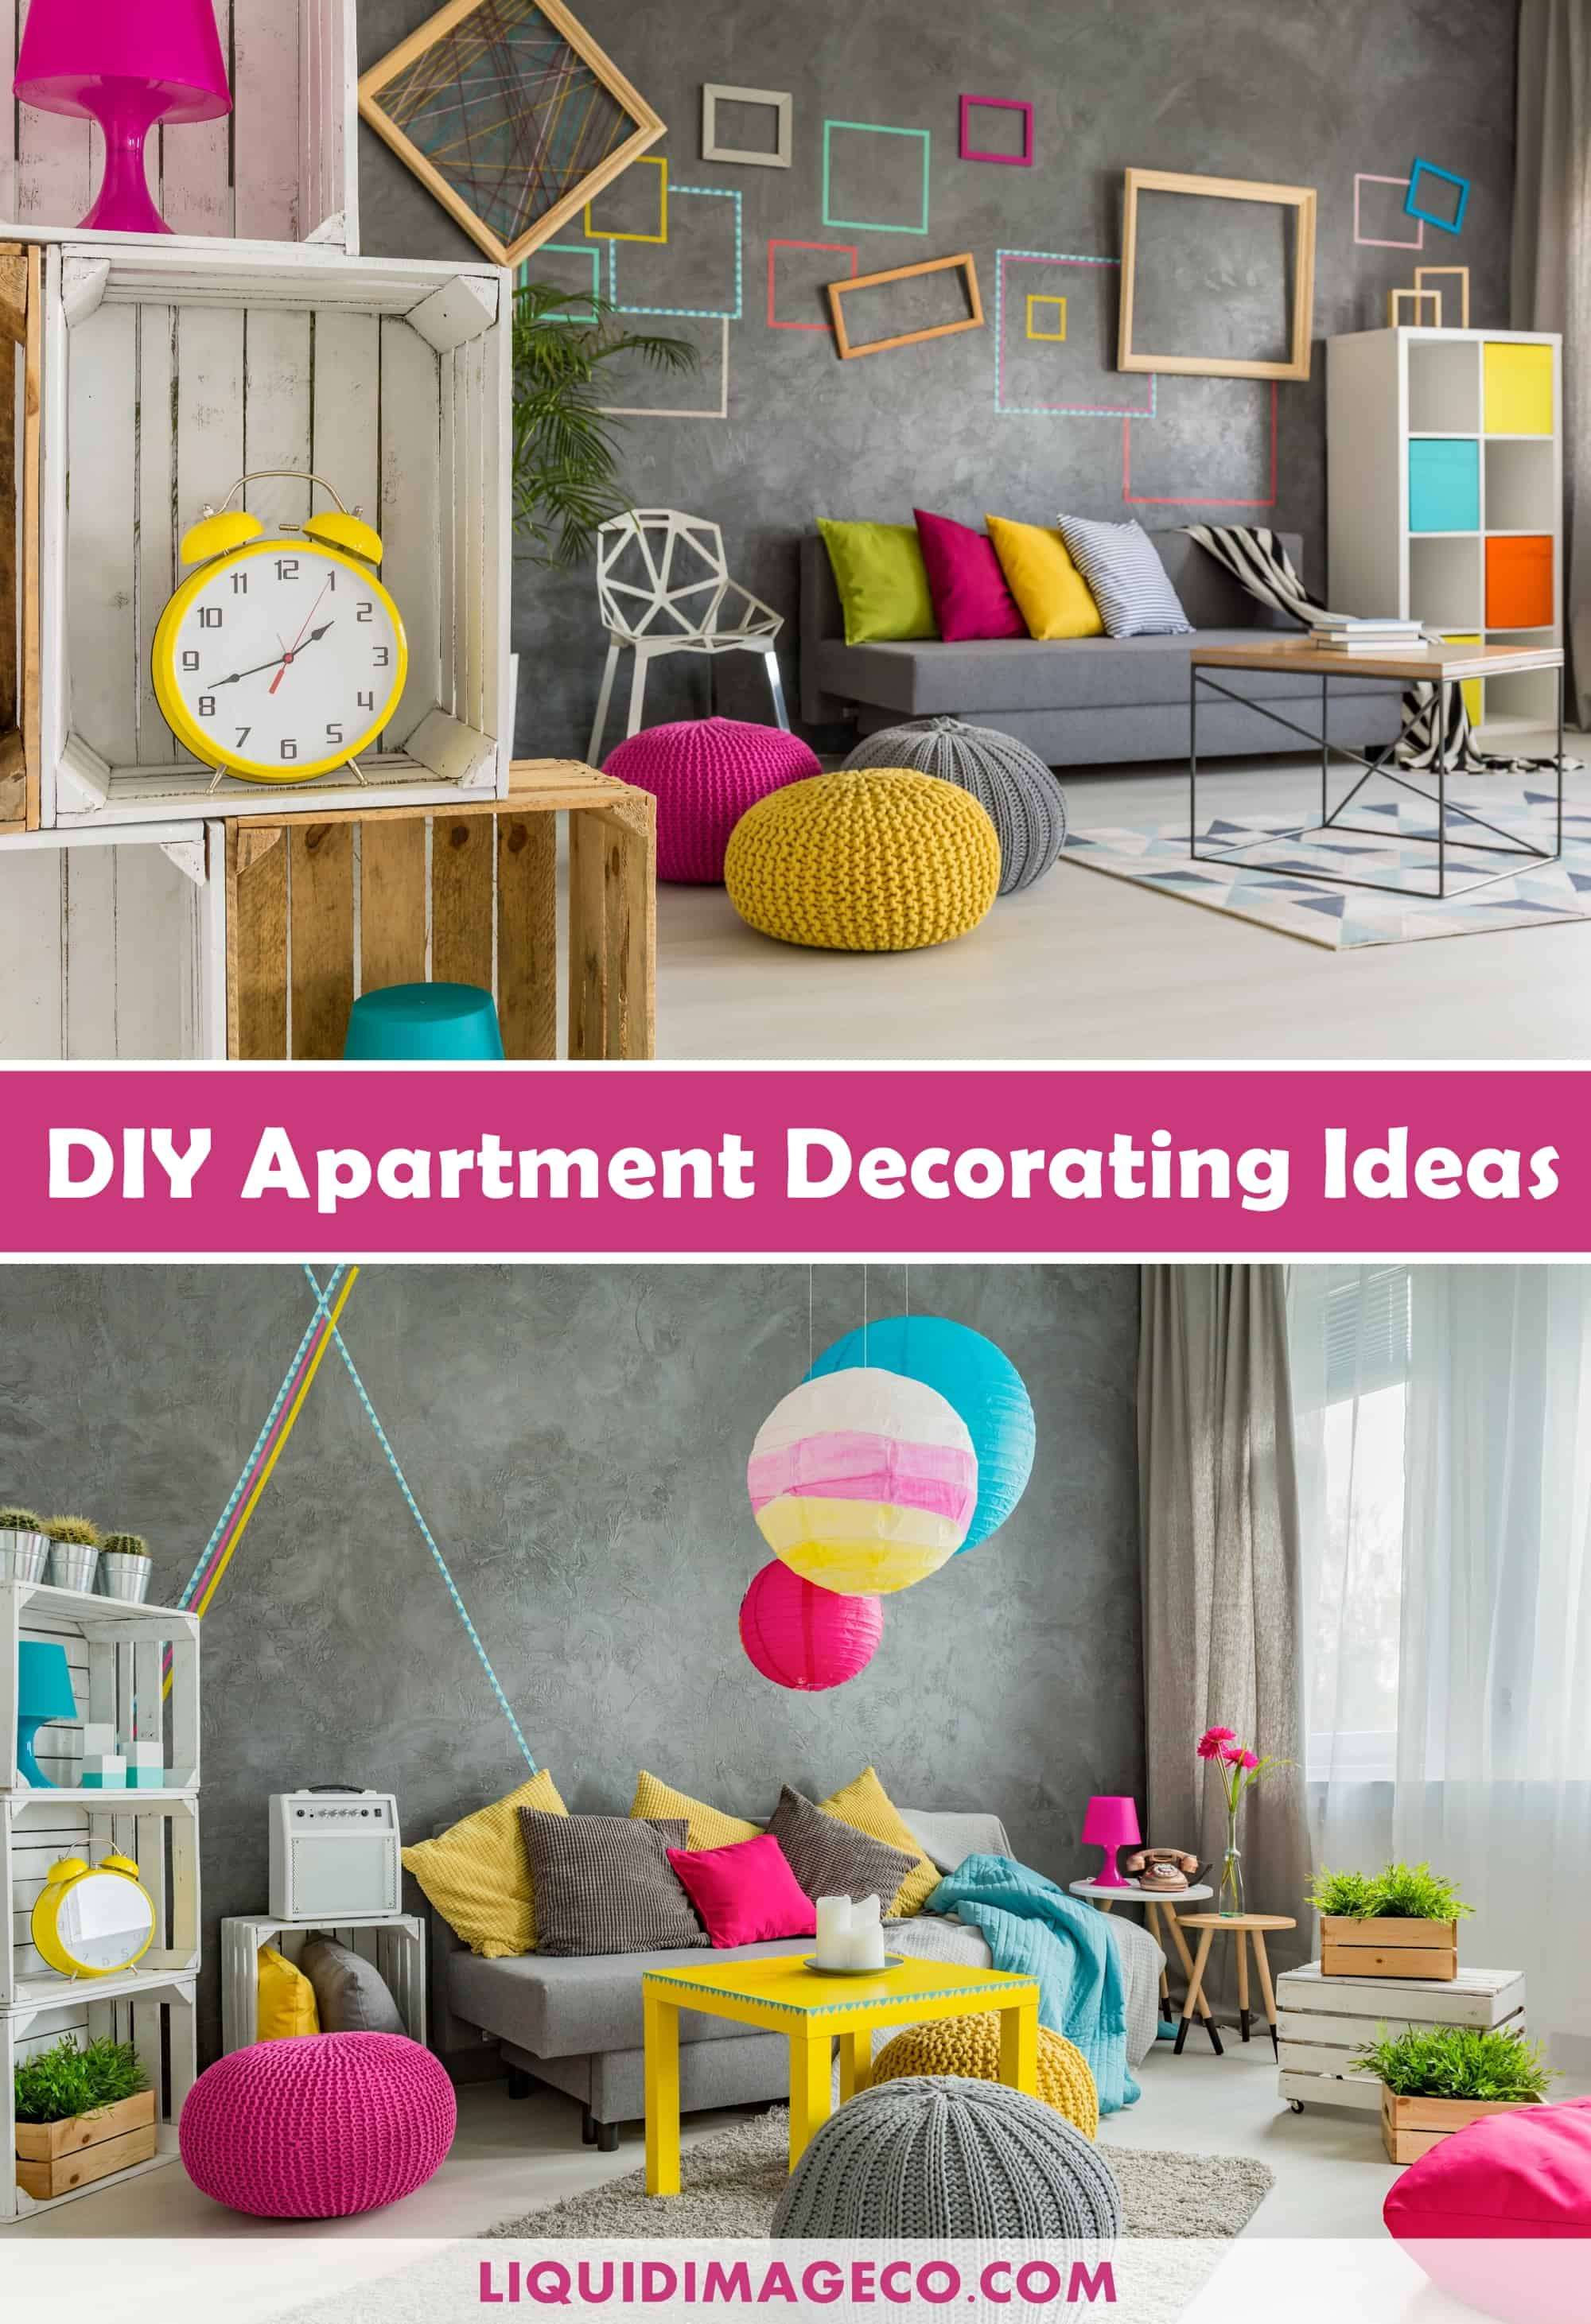 29 Diy Apartment Decorating Ideas Liquid Image